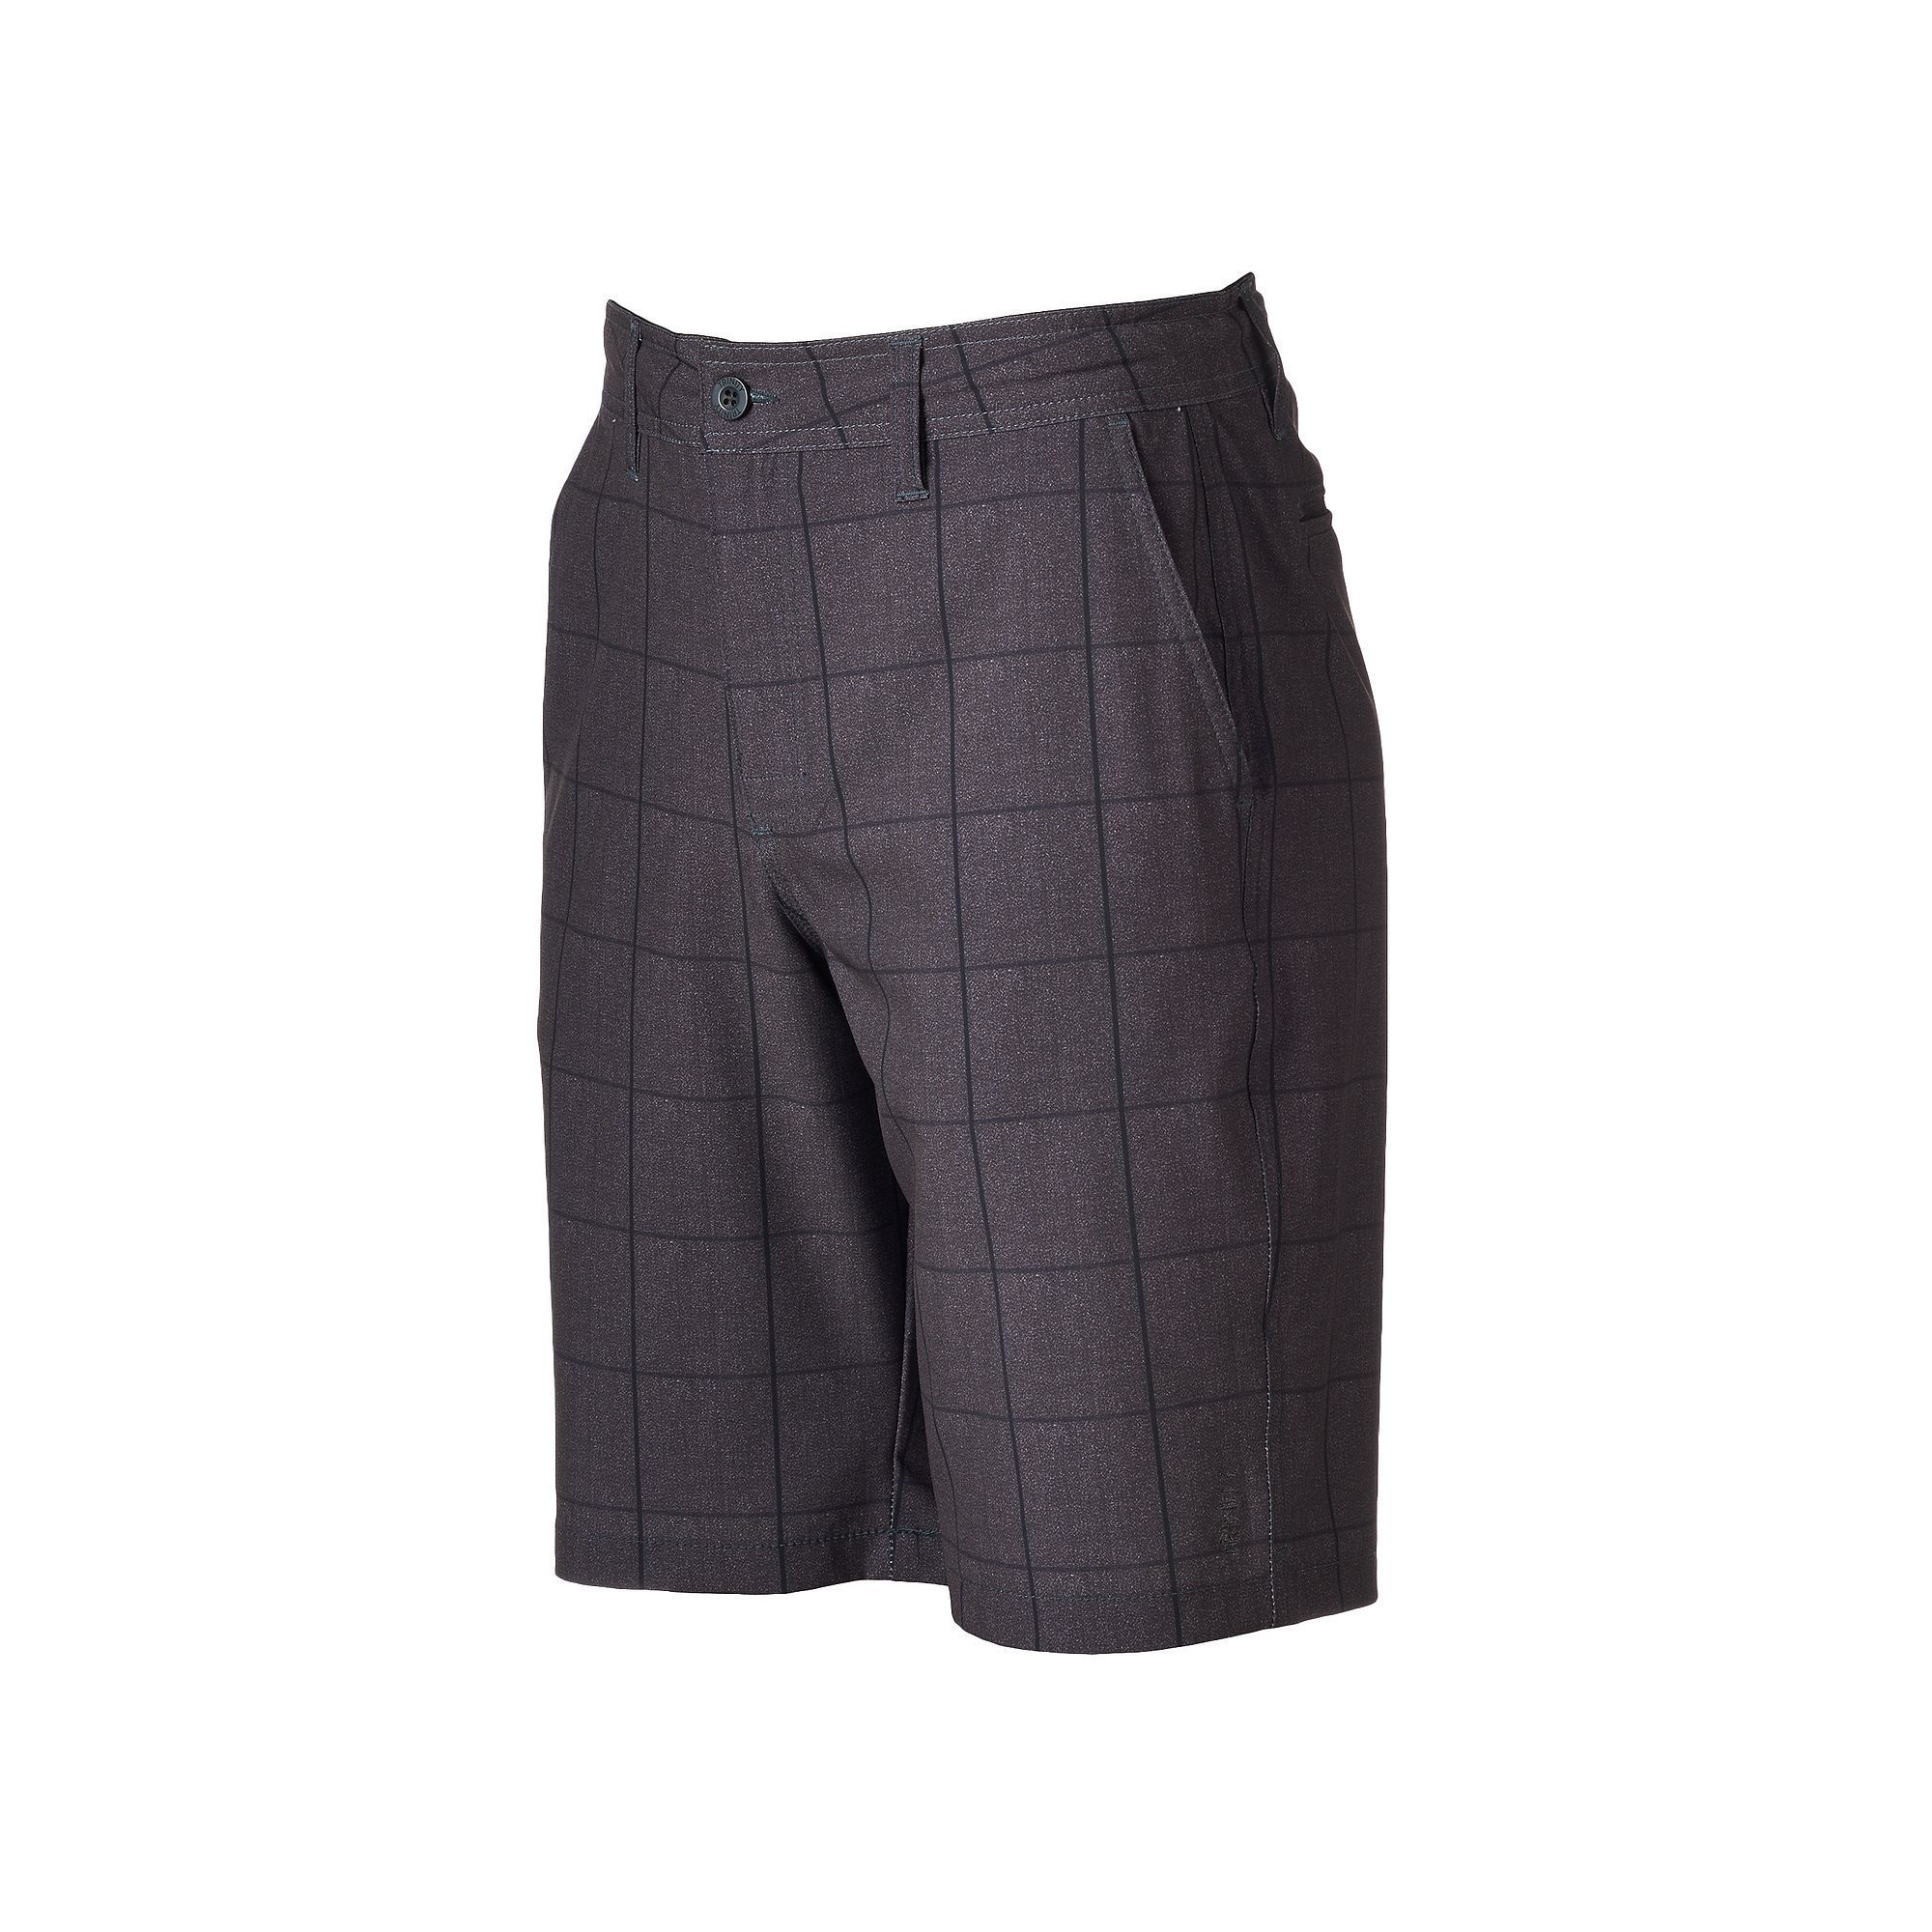 7a9c56f8a8 Men's Trinity Collective Webber Hybrid Shorts | Products | Shorts ...